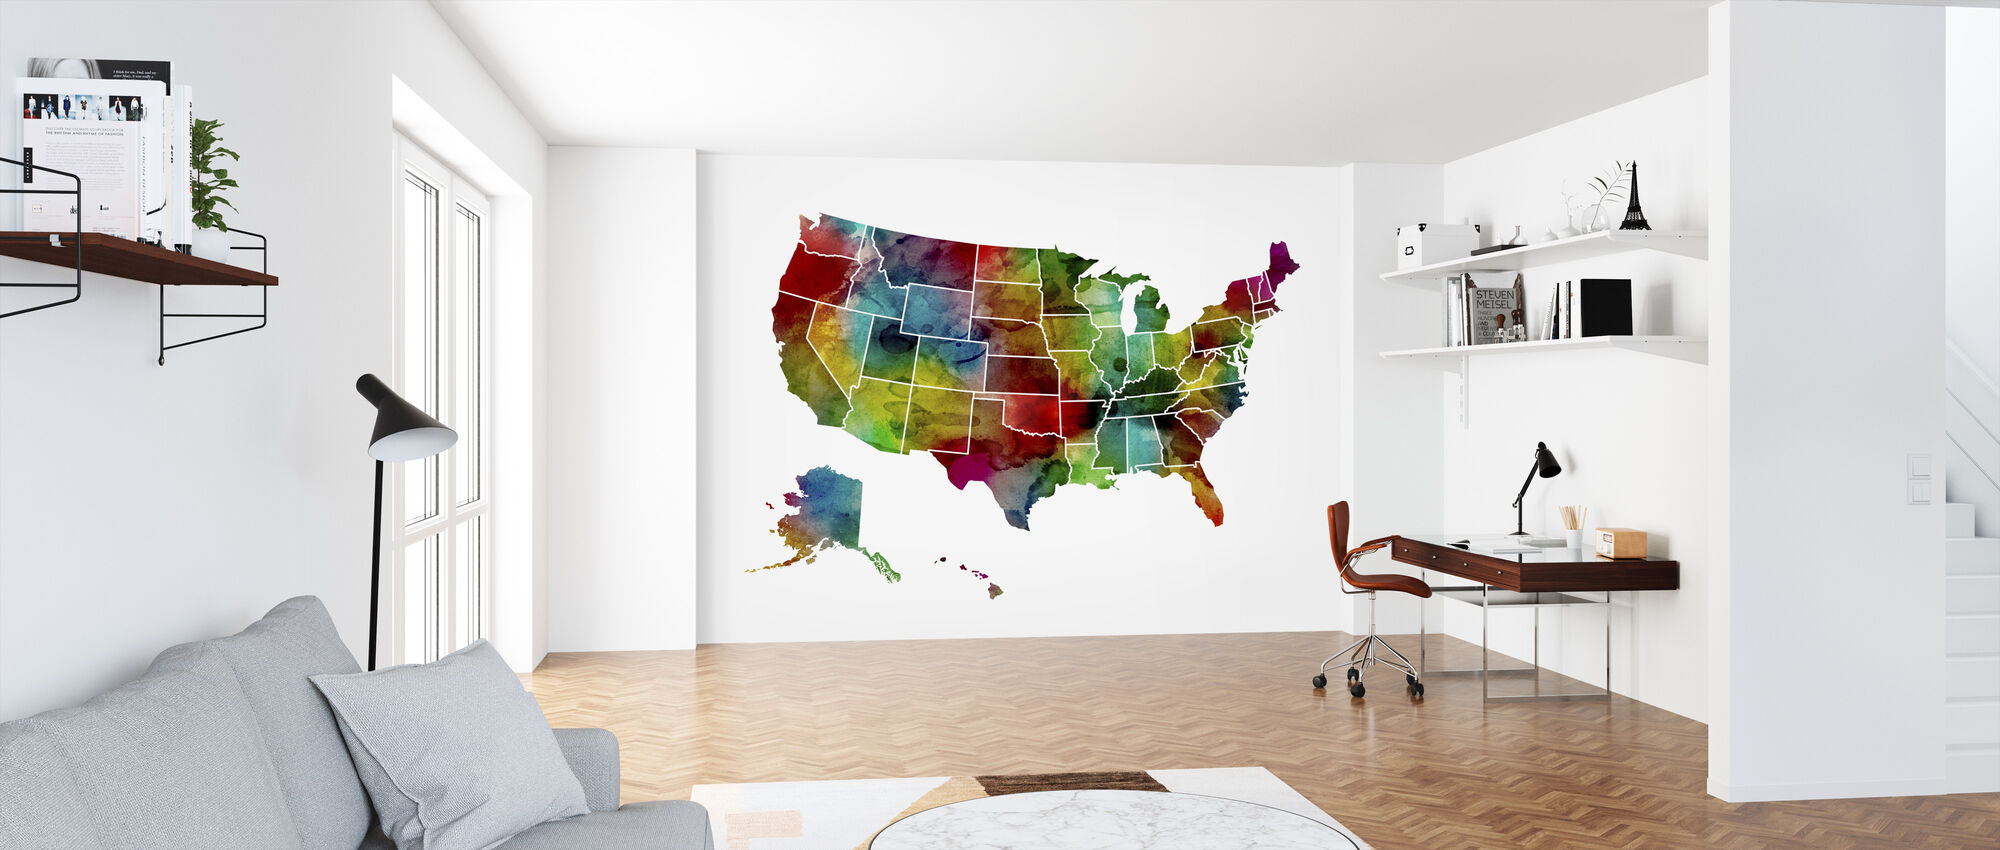 USA Watercolor Map - Wallpaper - Office